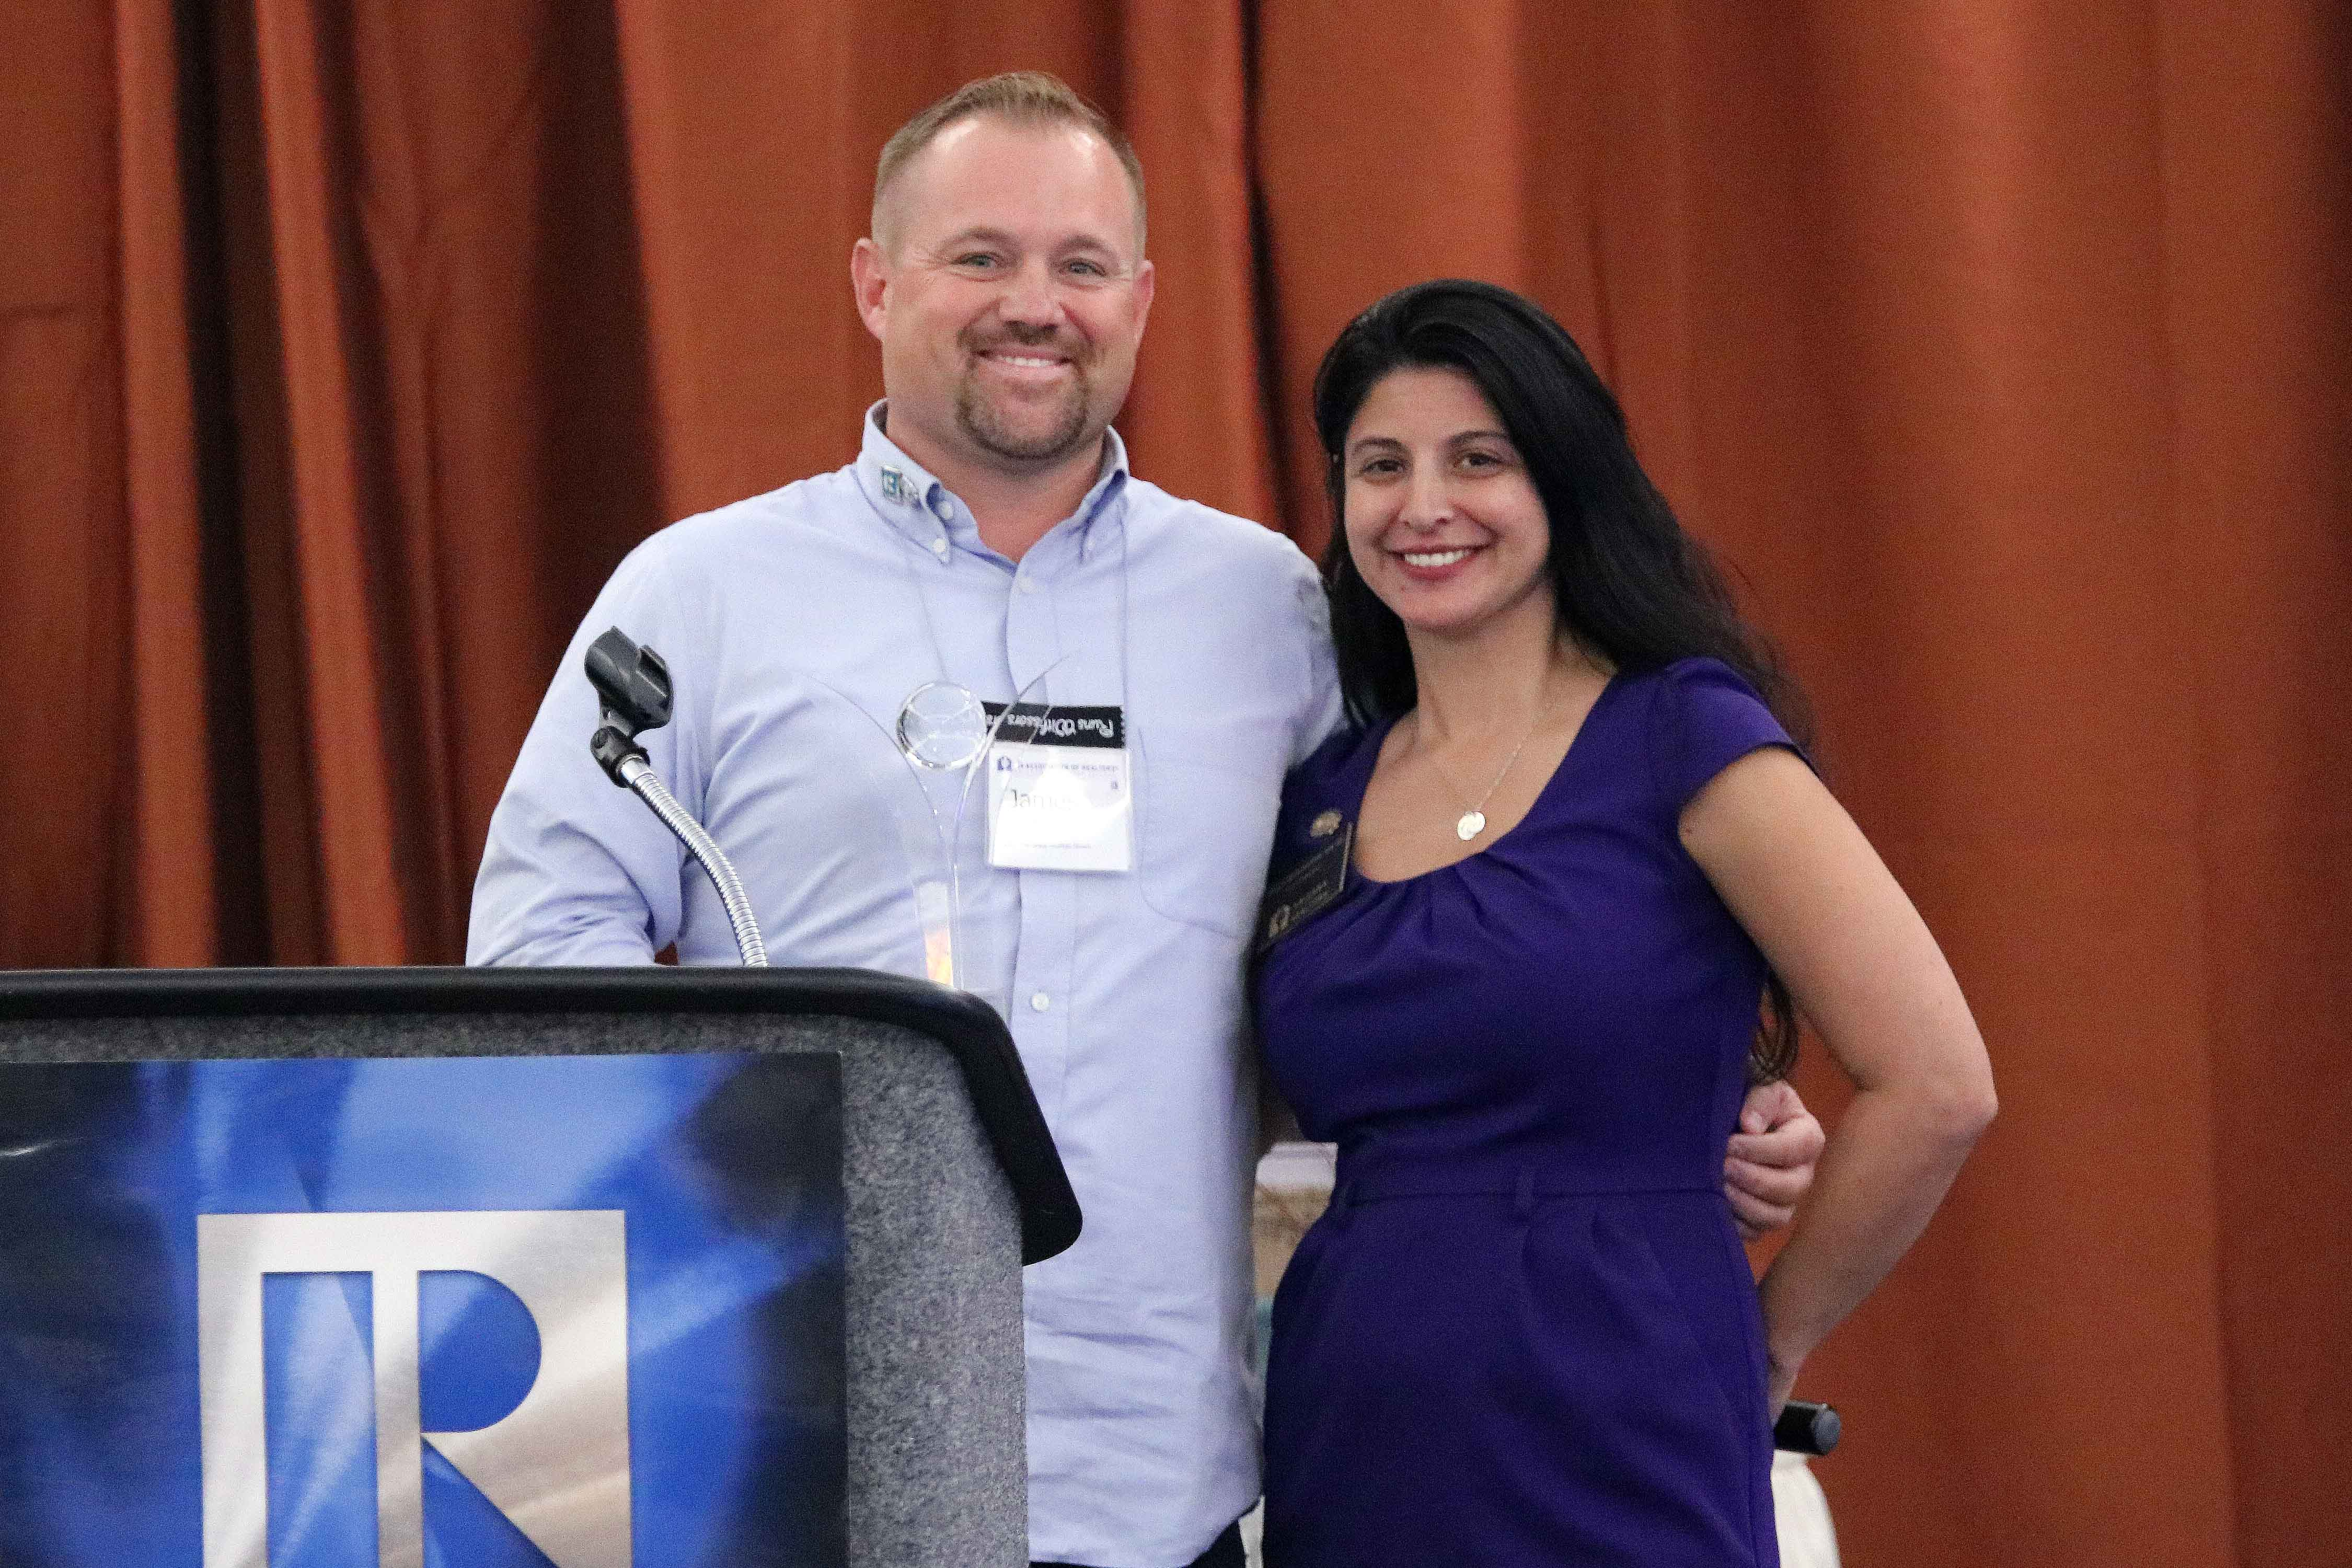 Arizona REALTORS® 2017 President Paula Monthofer presents the Community Outreach Local Association Award to James Adams who represented the Serdona Verde Valley Association of REALTORS®.